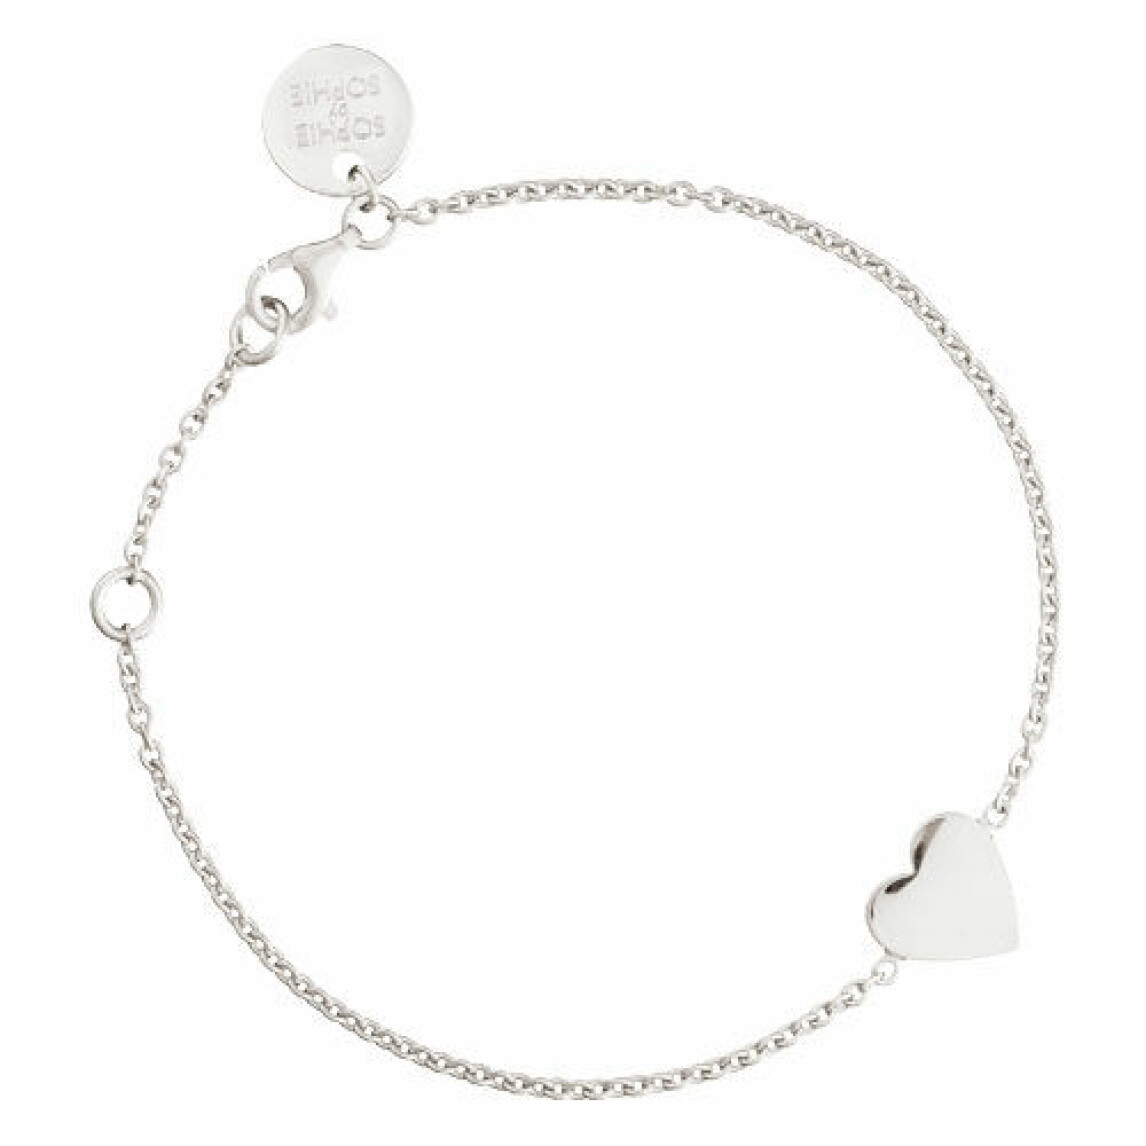 silverarmband sophie by sophie